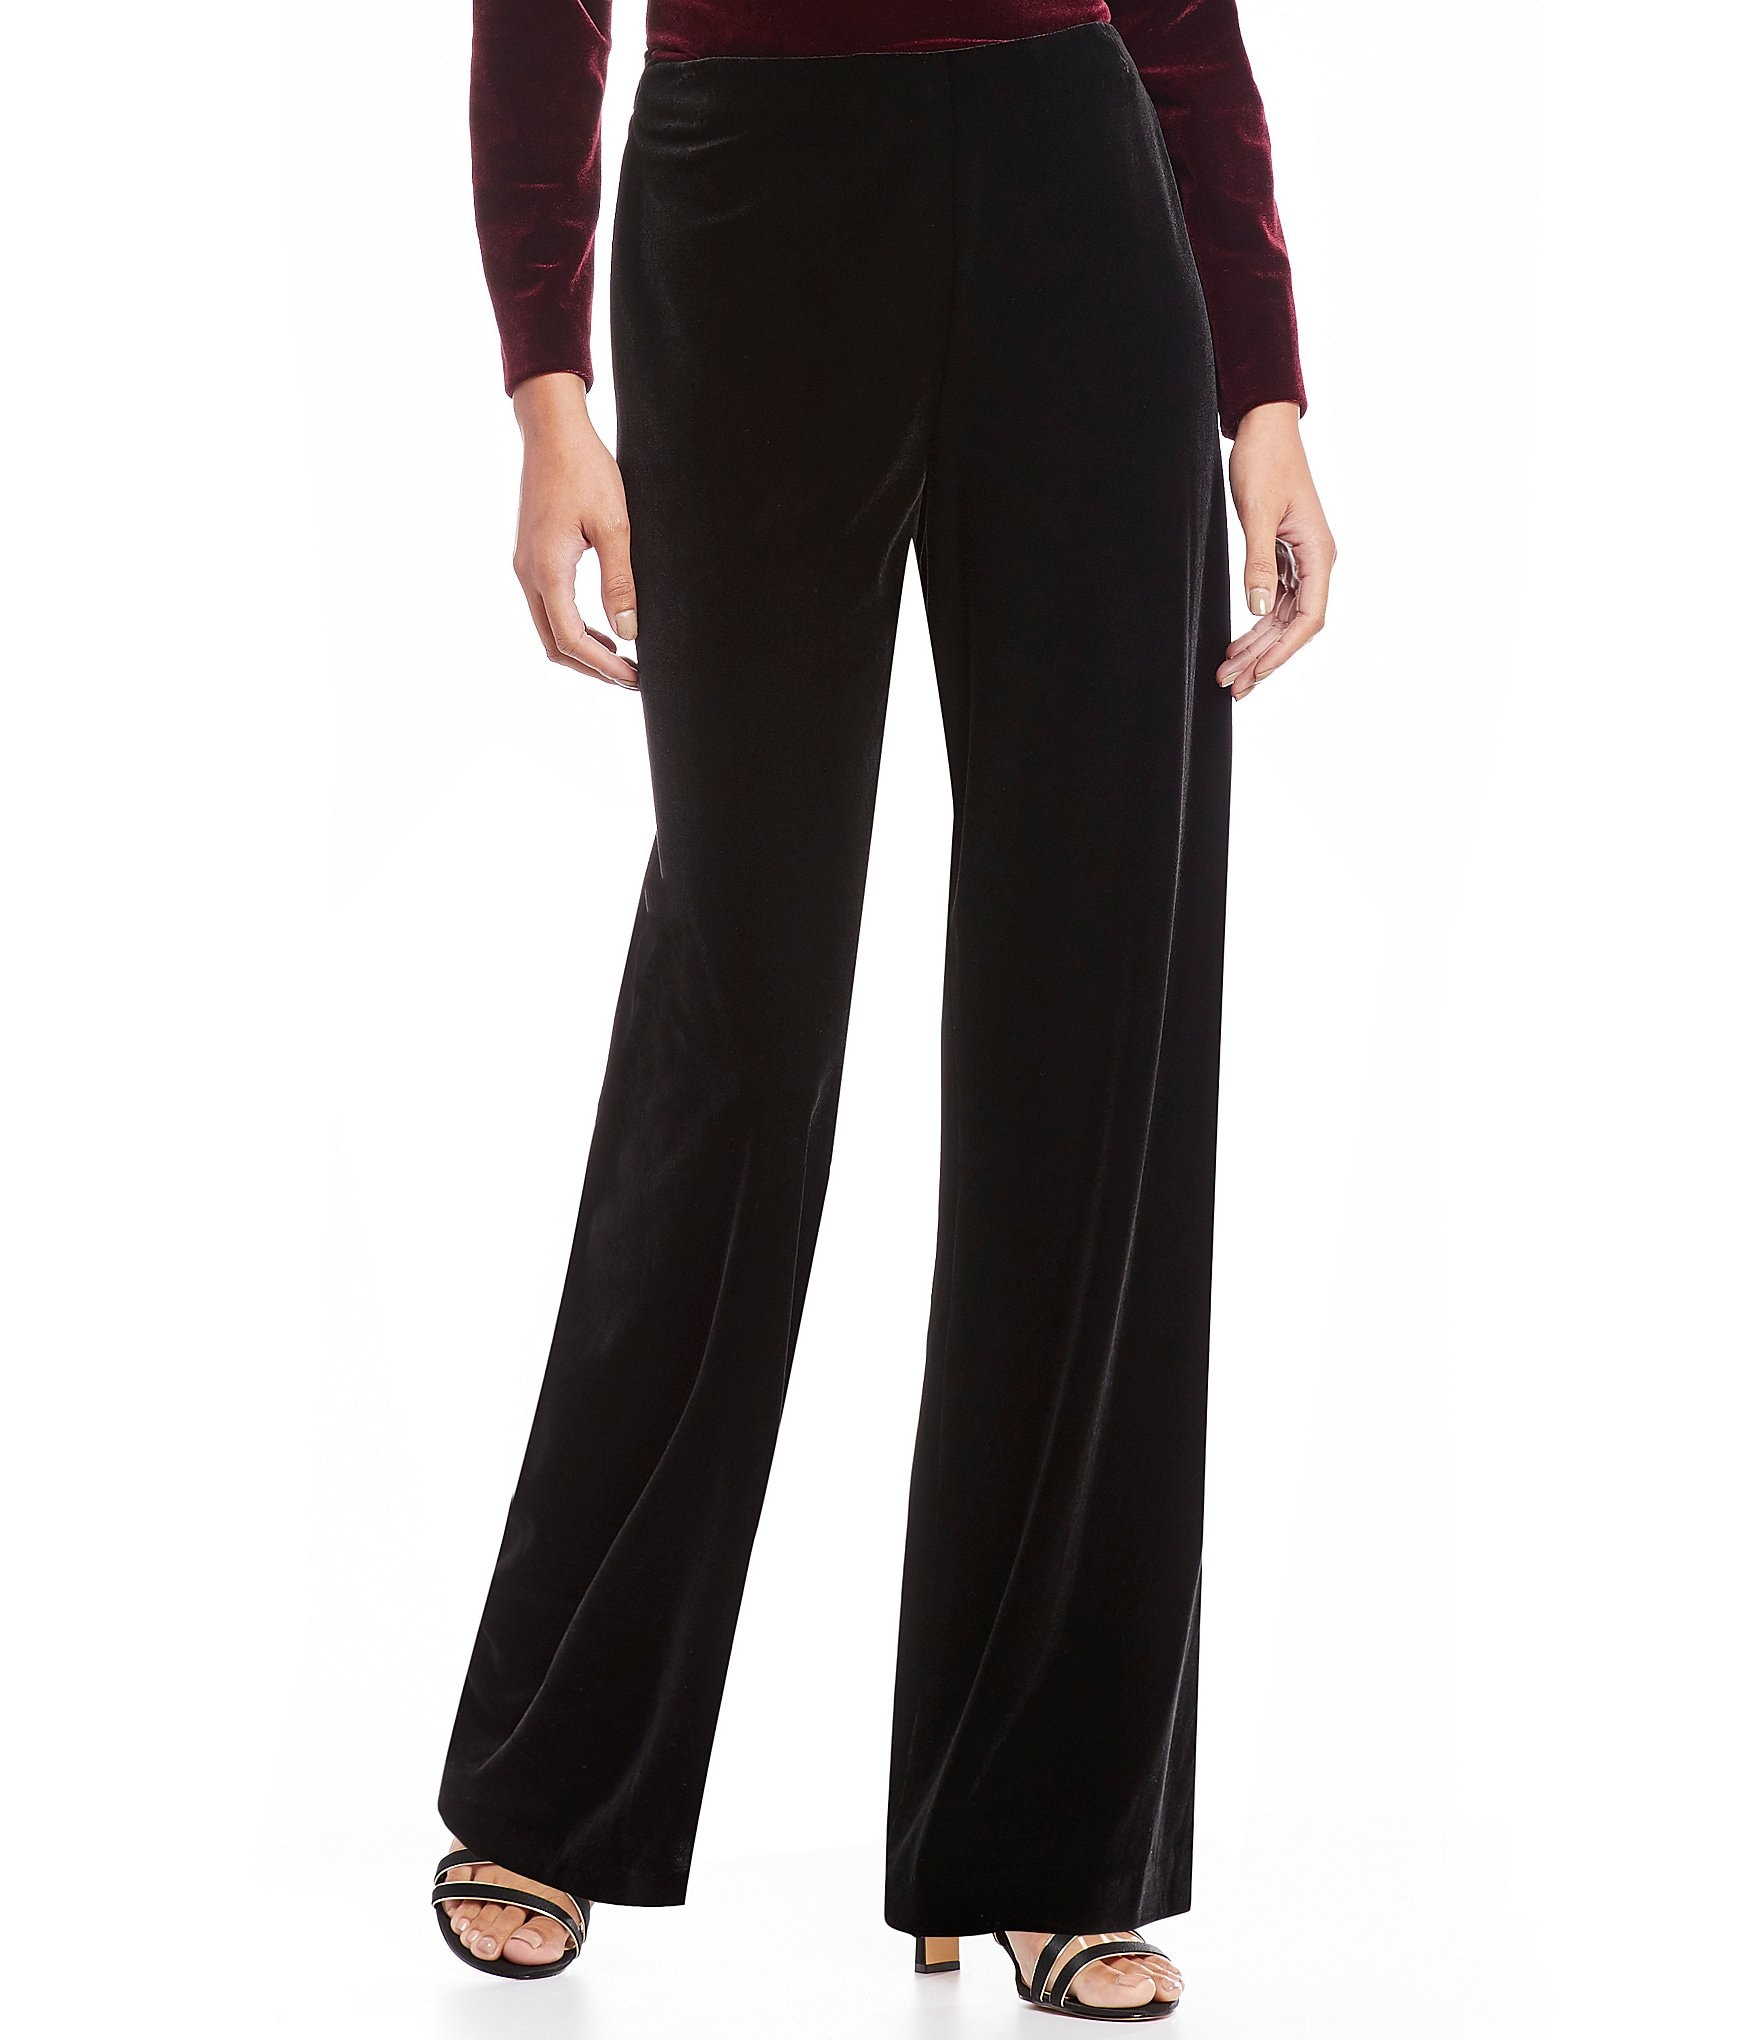 Find the perfect petite pants at Ann Taylor. Shop versatile ankle pants, trousers, leggings, & more at the right length, for everyday from work to weekend.